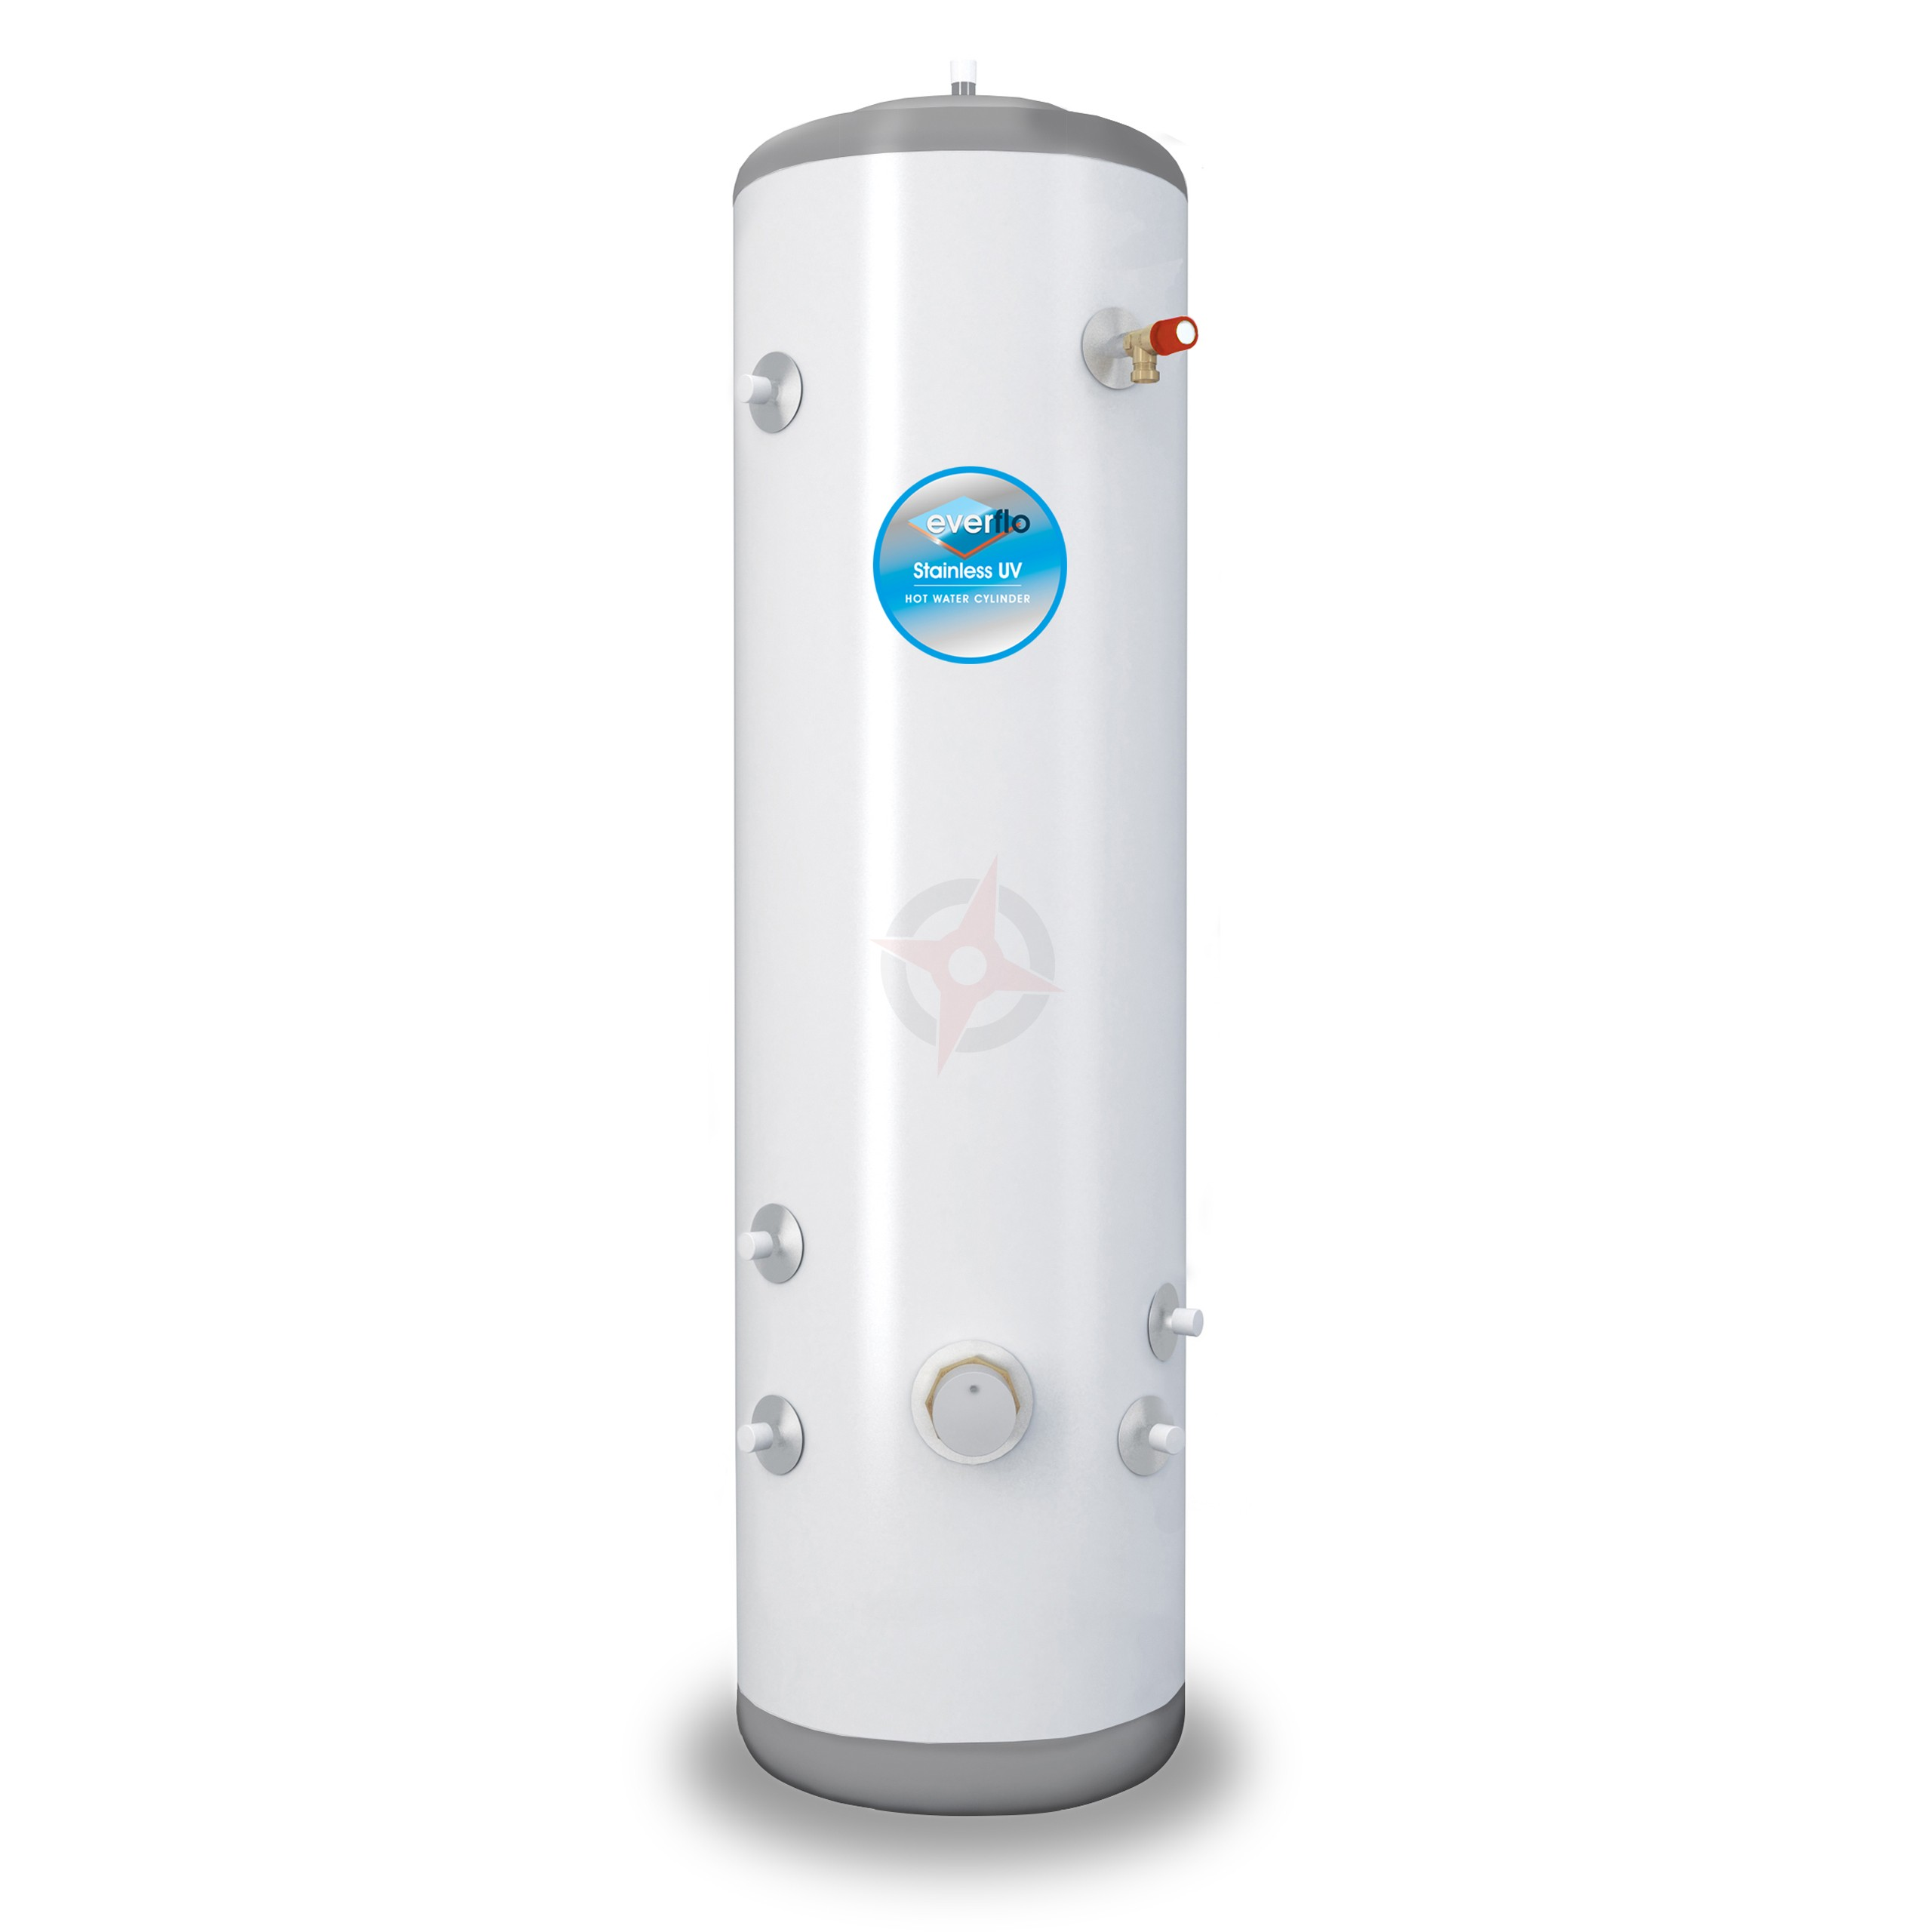 everflo Stainless 210L Slim-Fit Indirect Unvented Hot Water Storage Cylinder & Kit